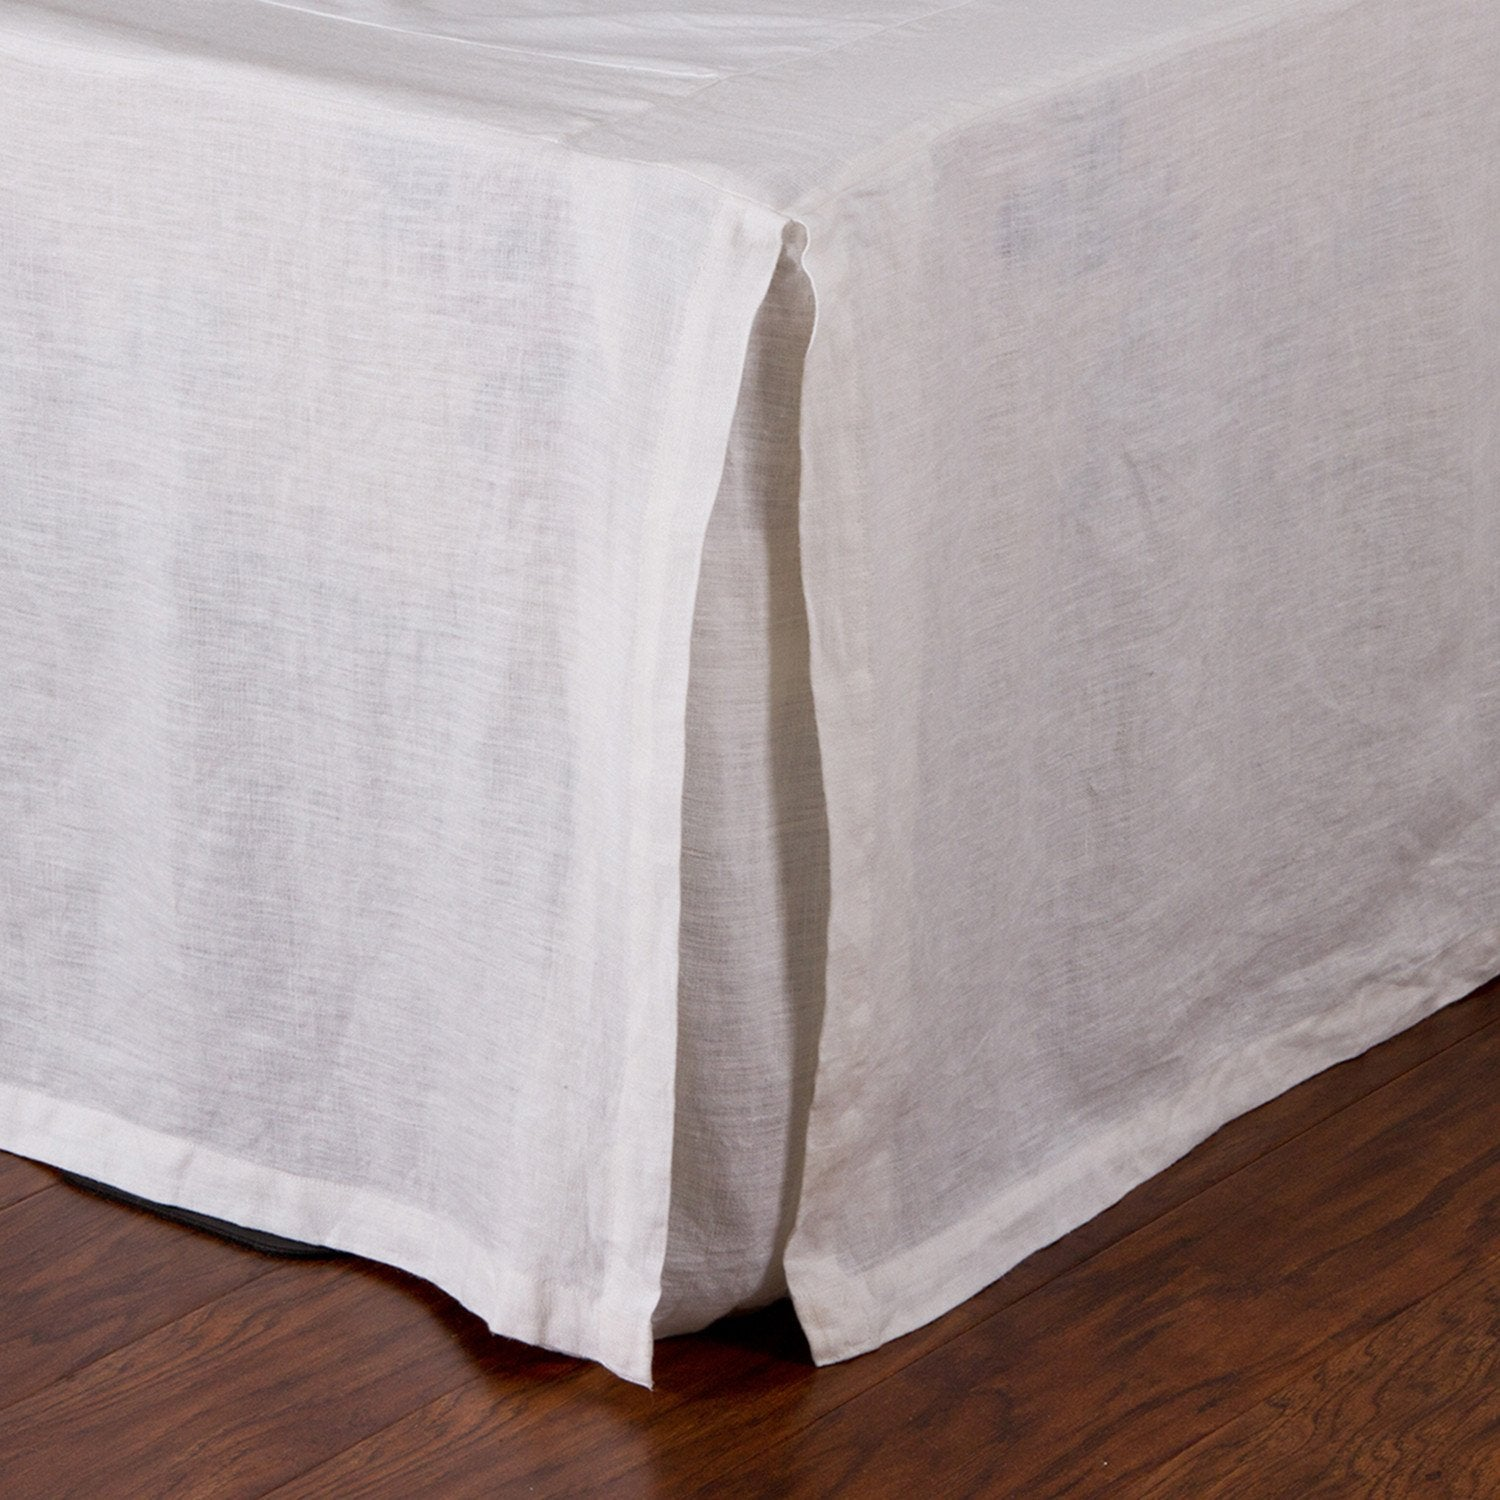 Pleated Linen Bedskirt in White design by Pom Pom at Home